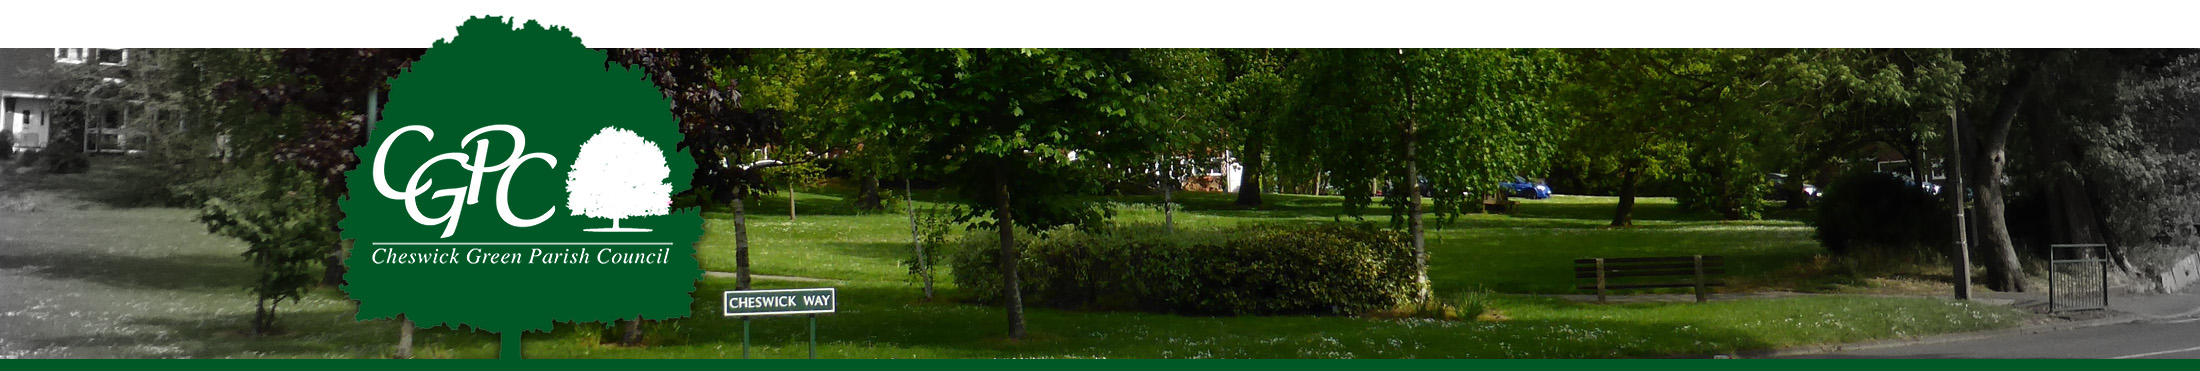 Header Image for Cheswick Green Parish Council